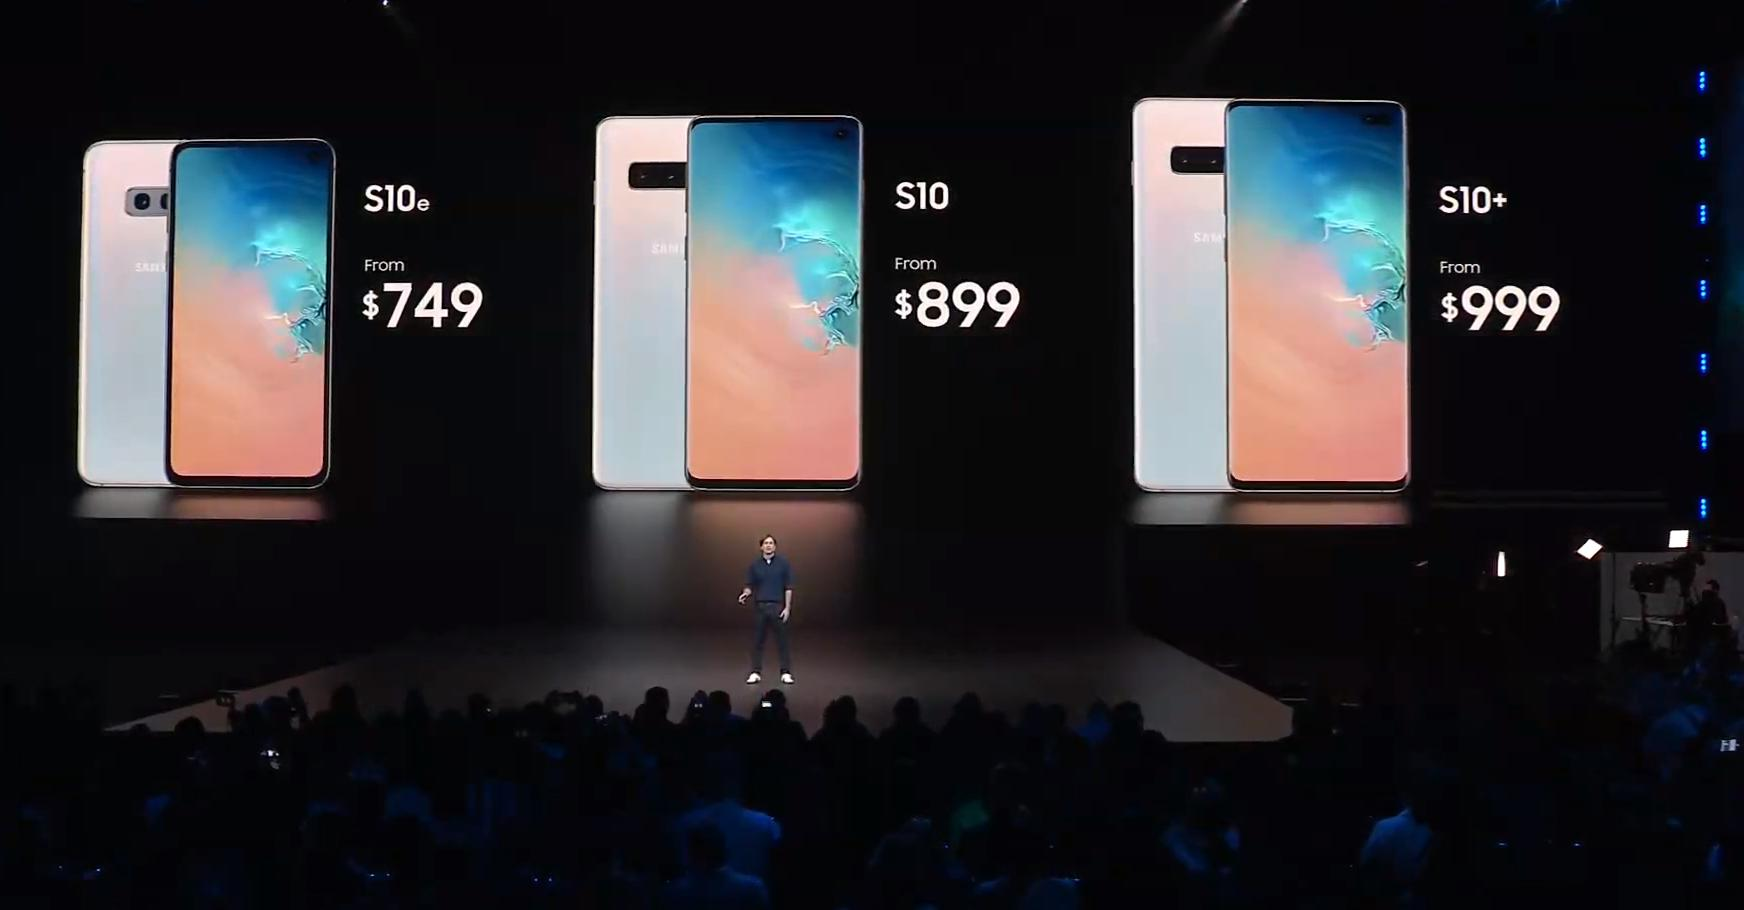 Here's the pricing for Samsung Galaxy S10 Family in India